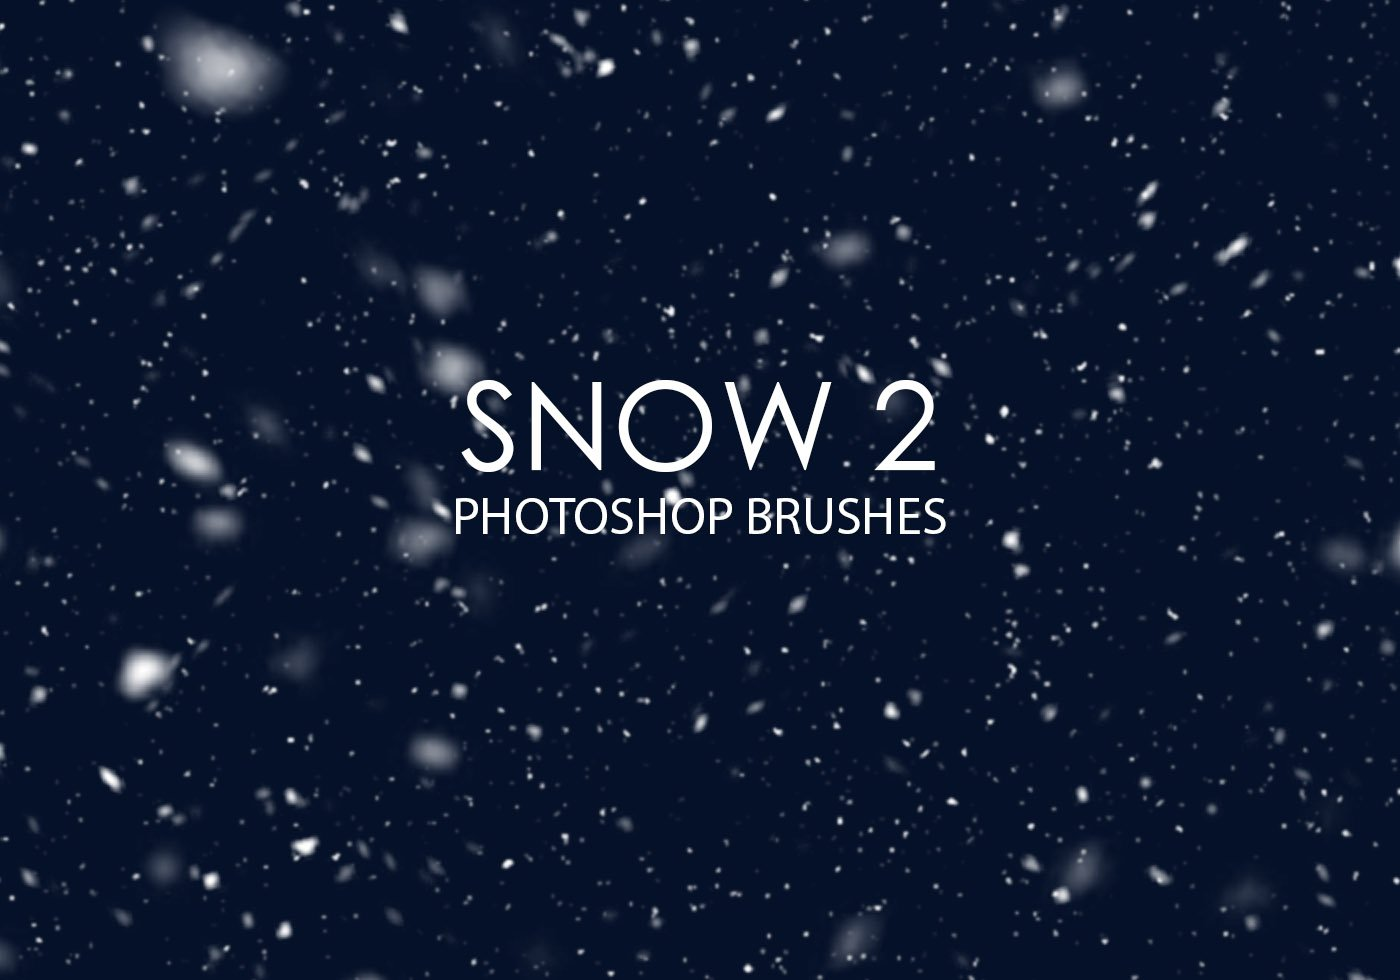 Snow Free Brushes - (697 Free Downloads)